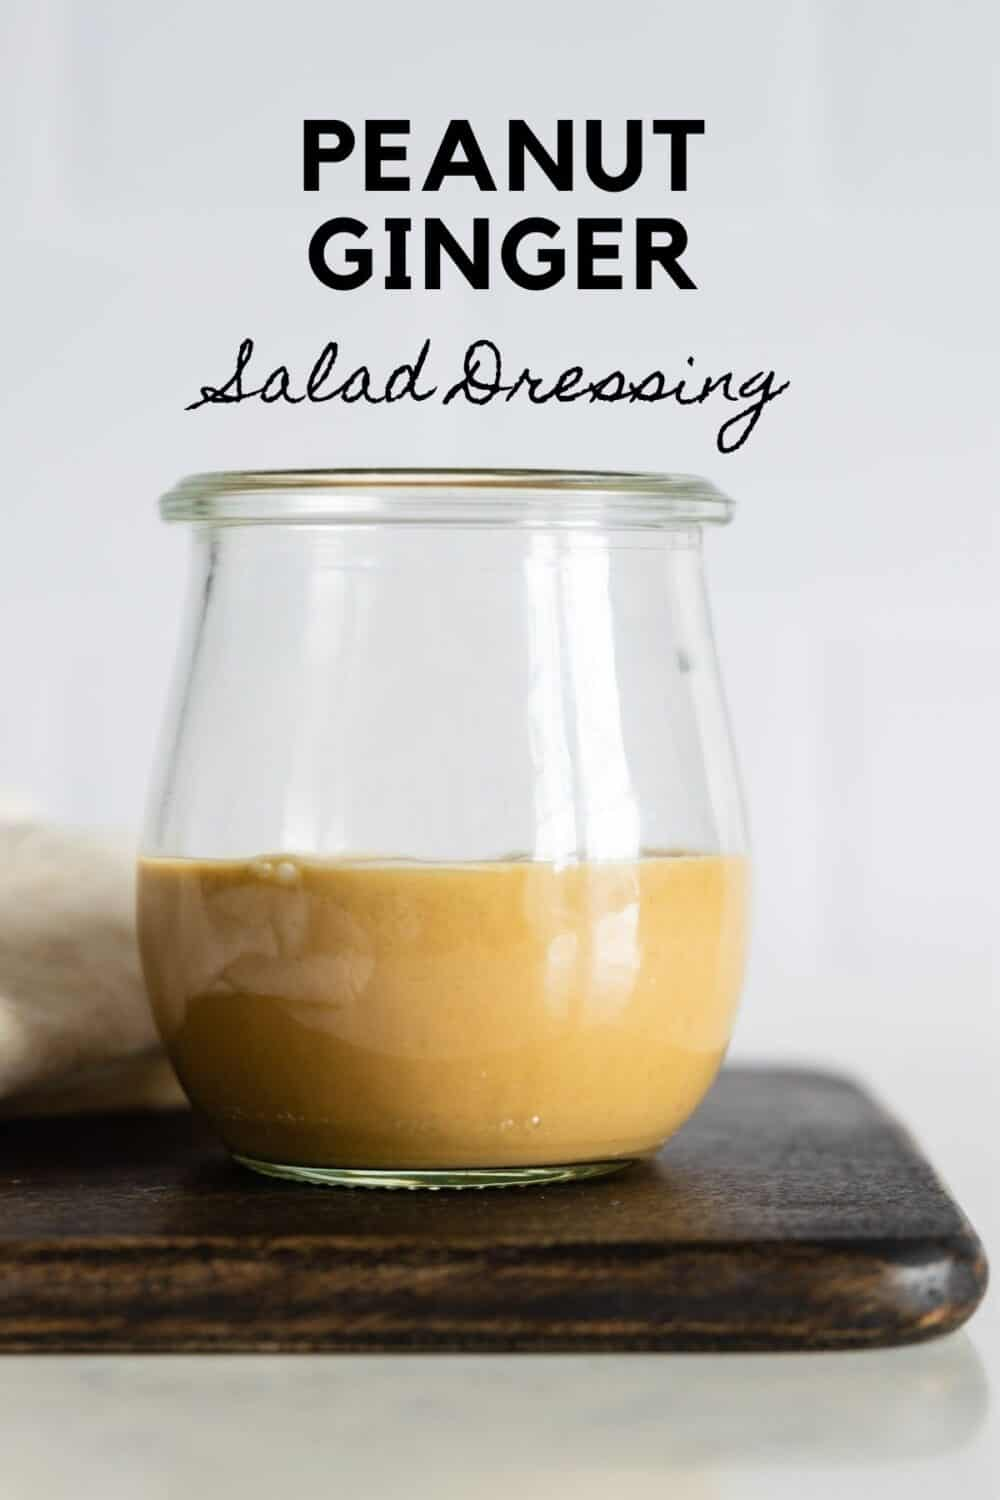 Glass jar with light brown salad dressing with title reading: Peanut Ginger Salad Dressing.